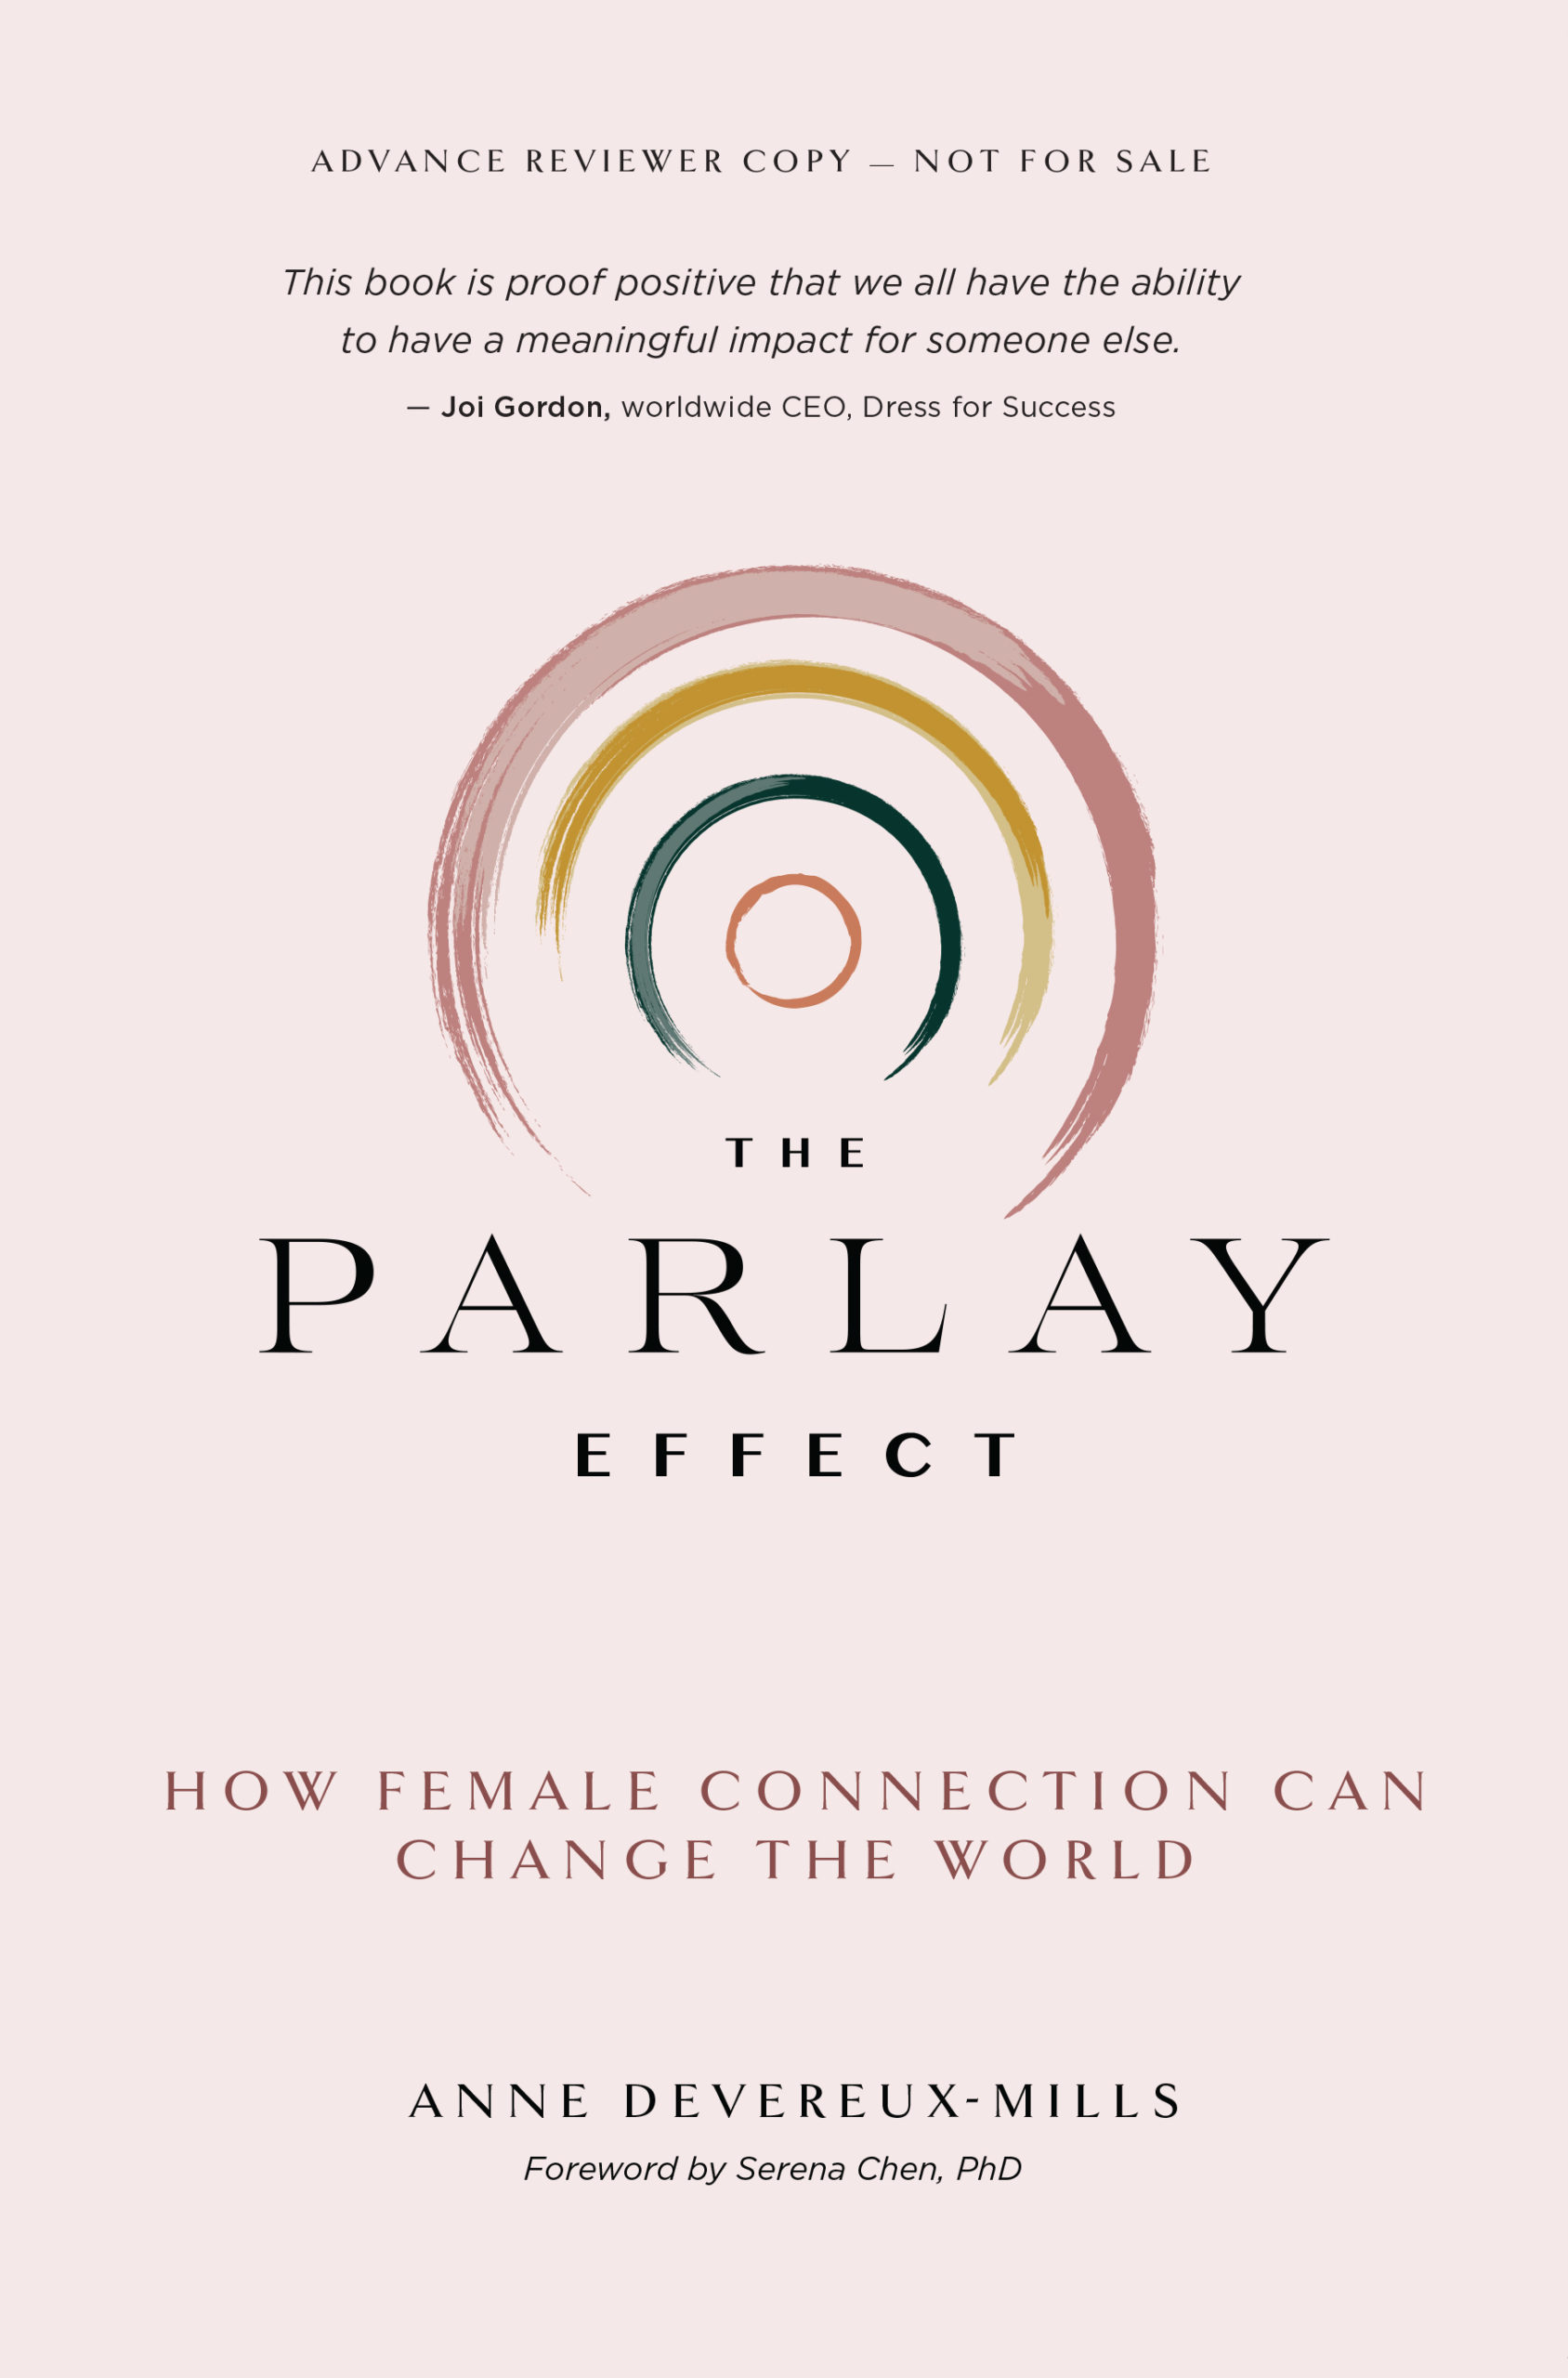 The Parlay Effect: How Female Connection Can Change The World